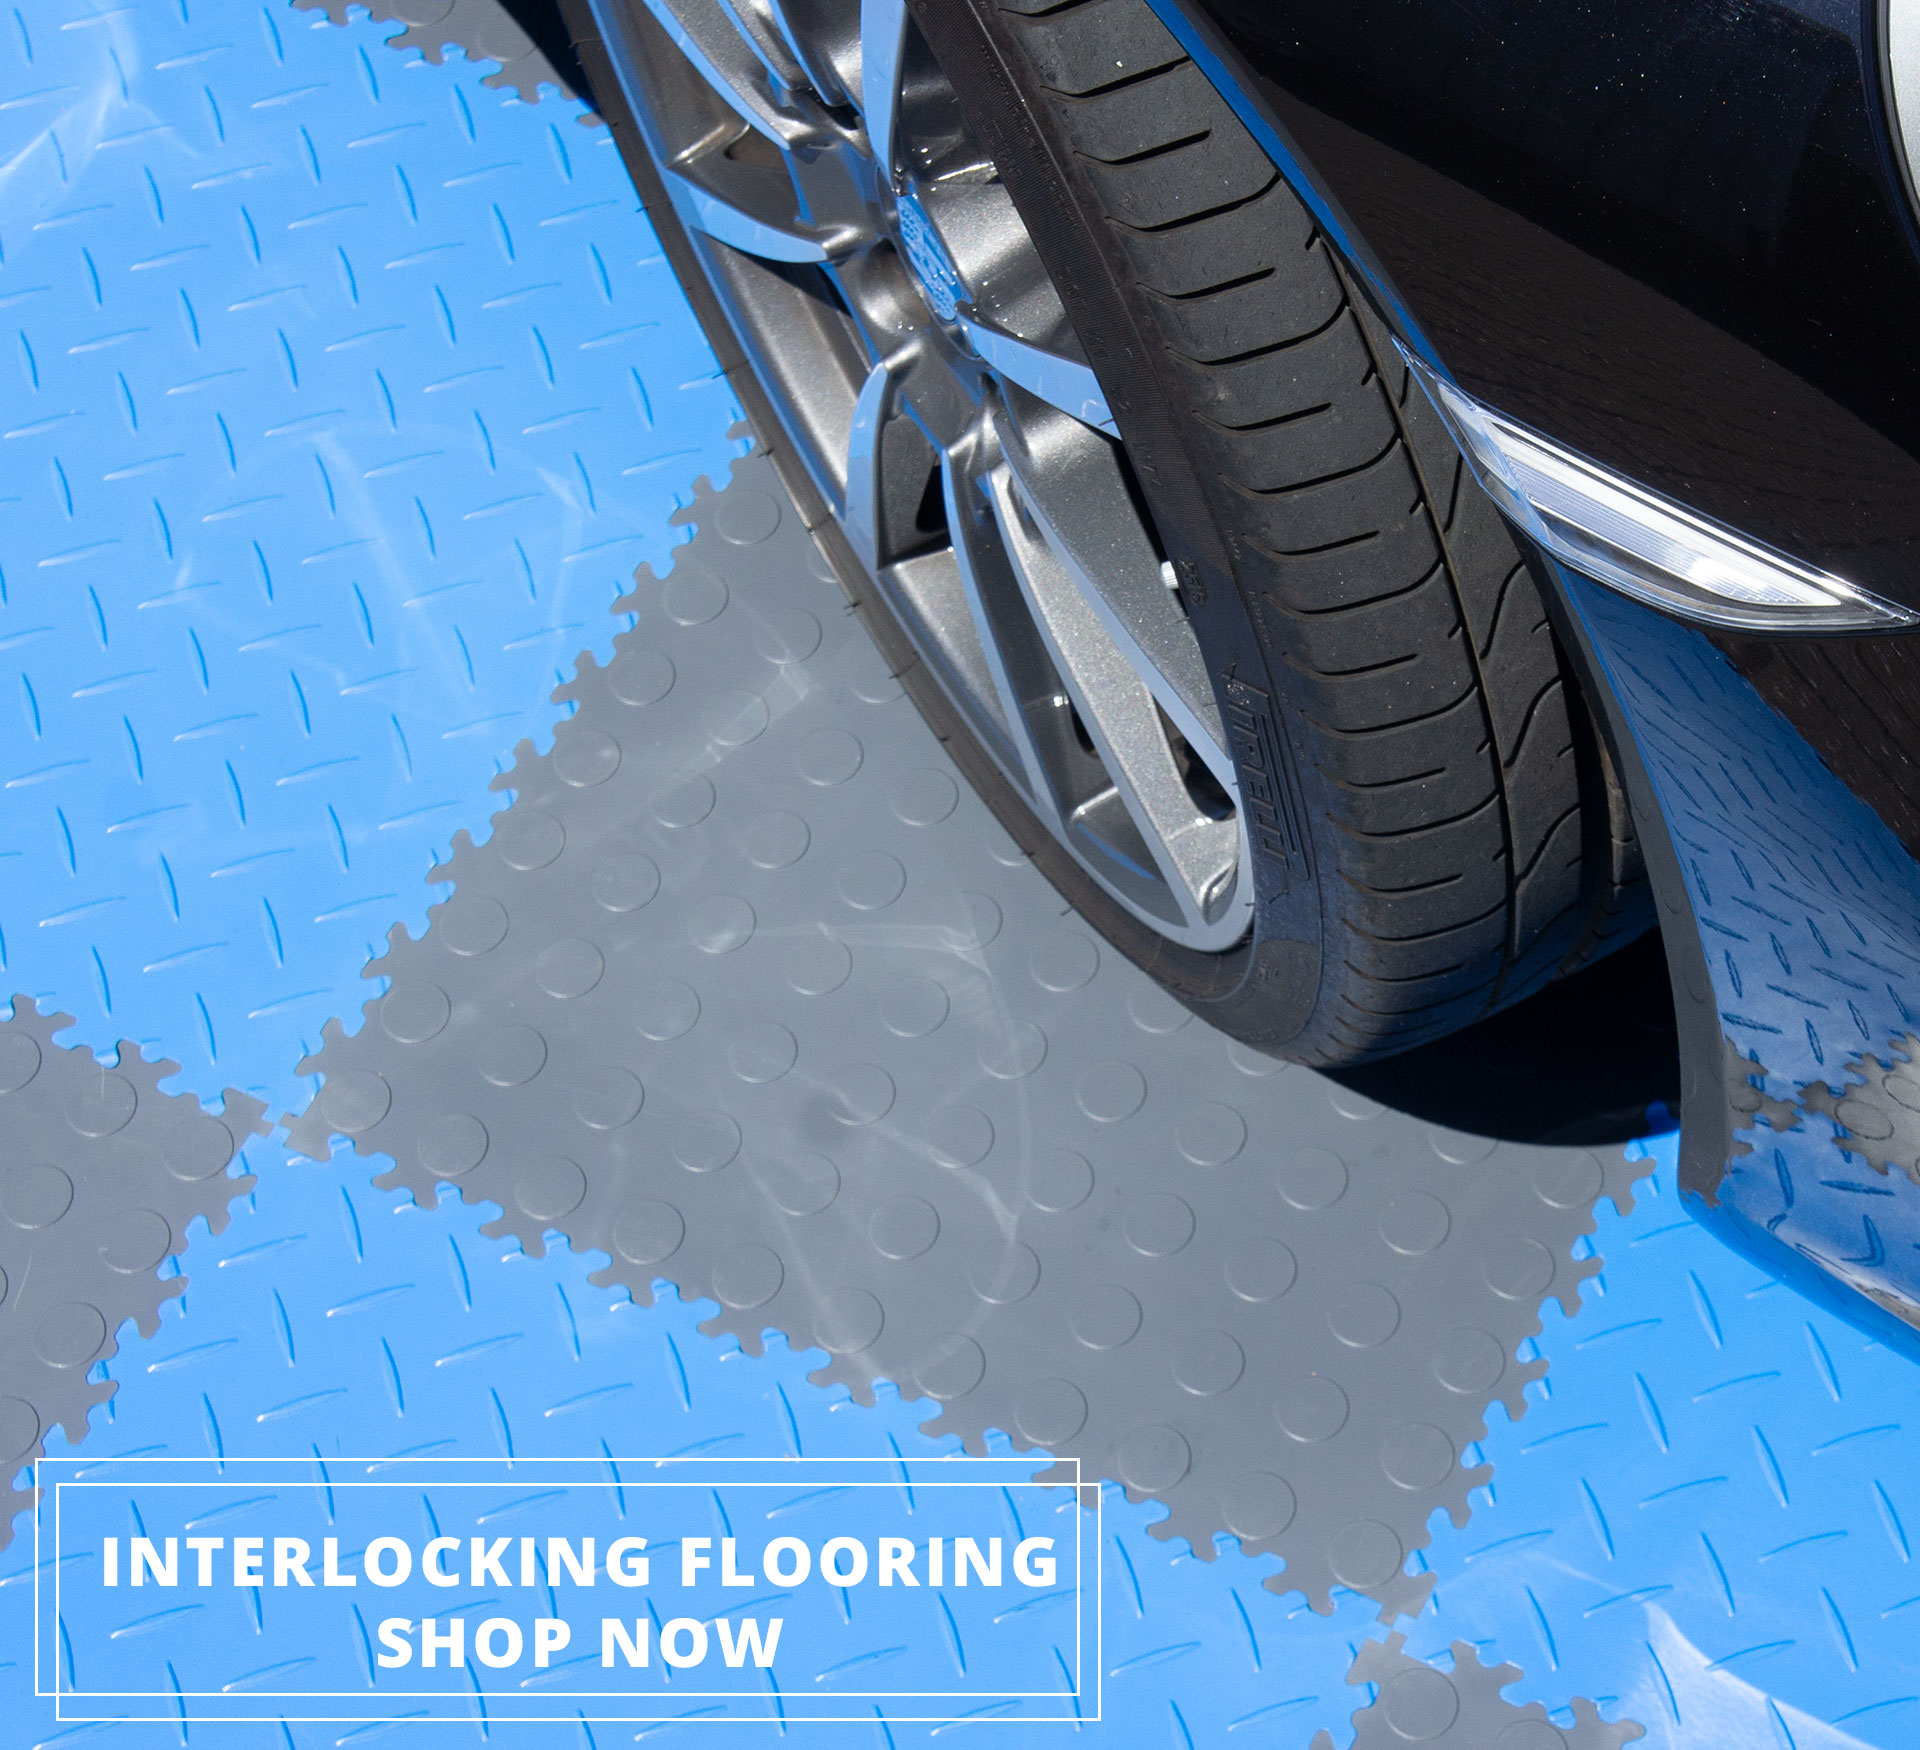 Mototile still open and full of interlocking tiles for your floor space